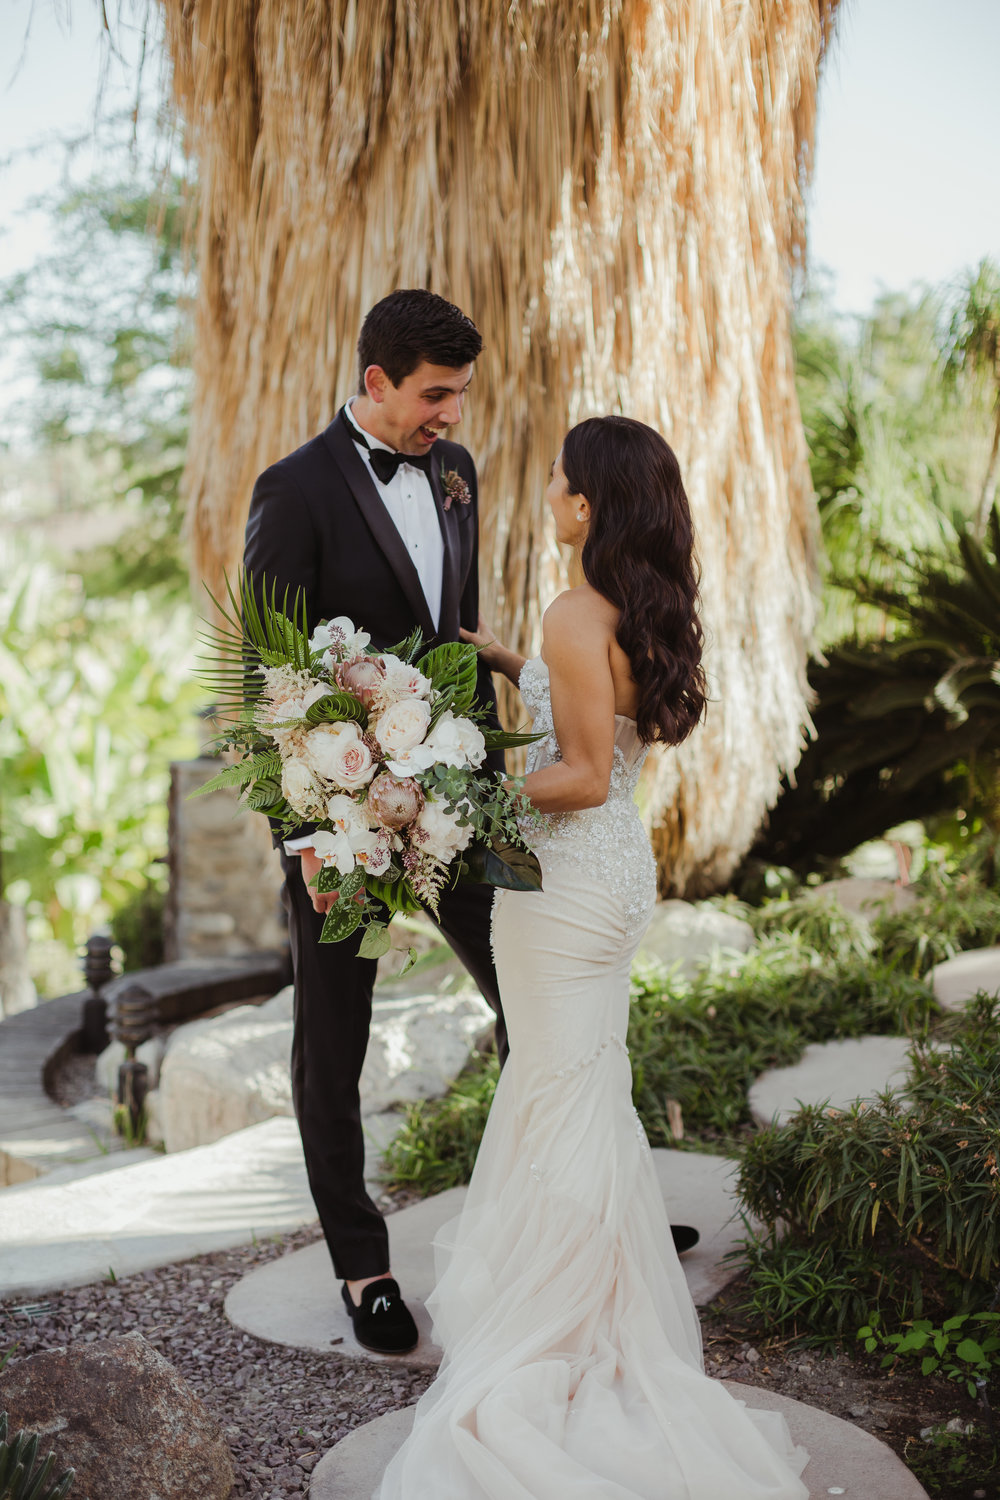 Lauren & Ben's Colony 29 wedding in Palm Springs, California photographed by Hannah Costello